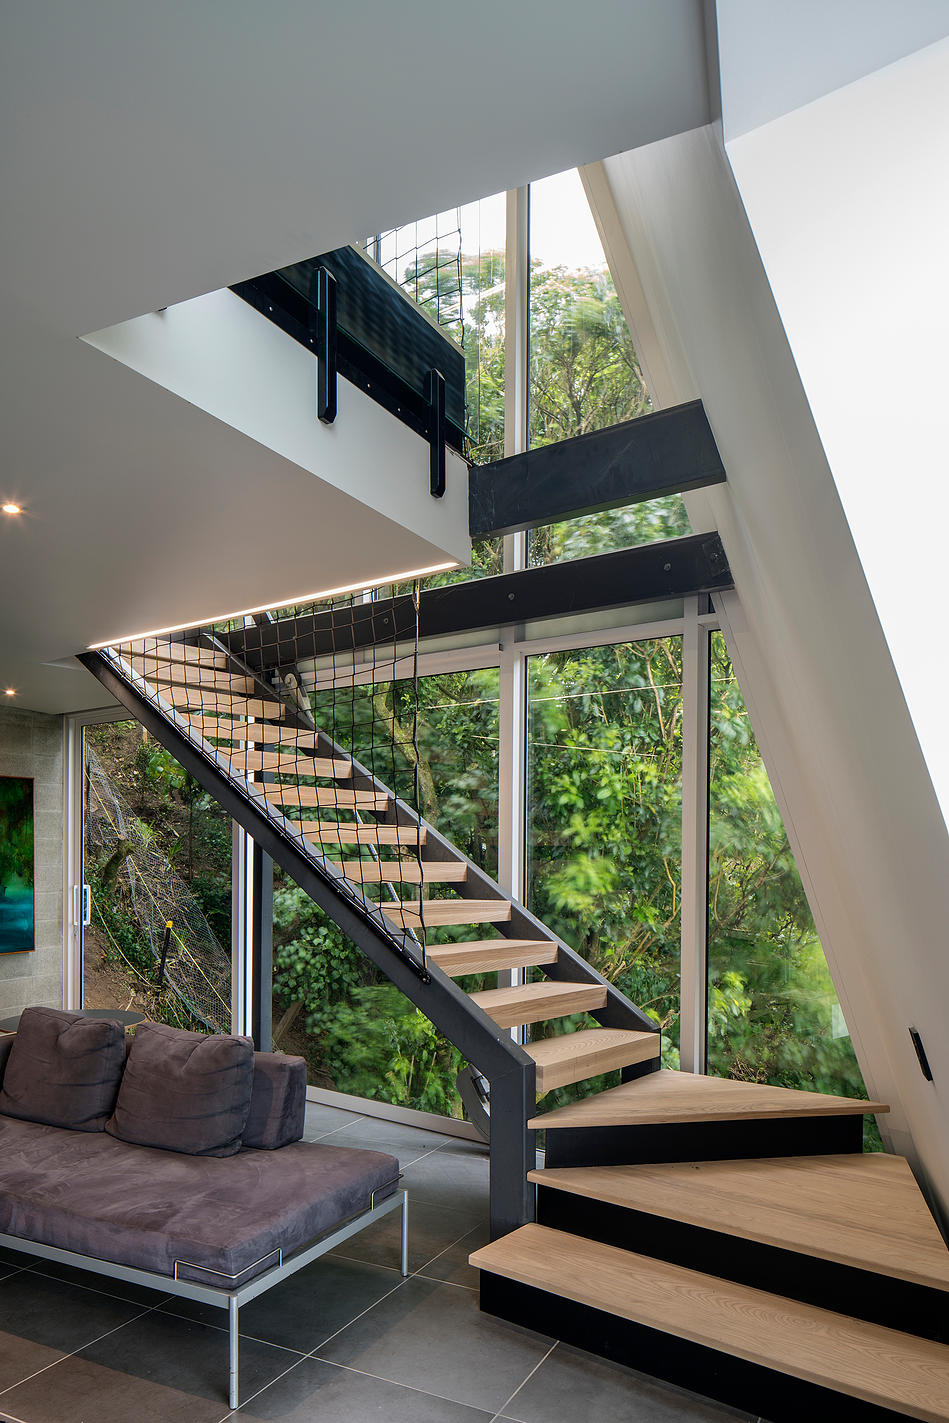 House design northland - The